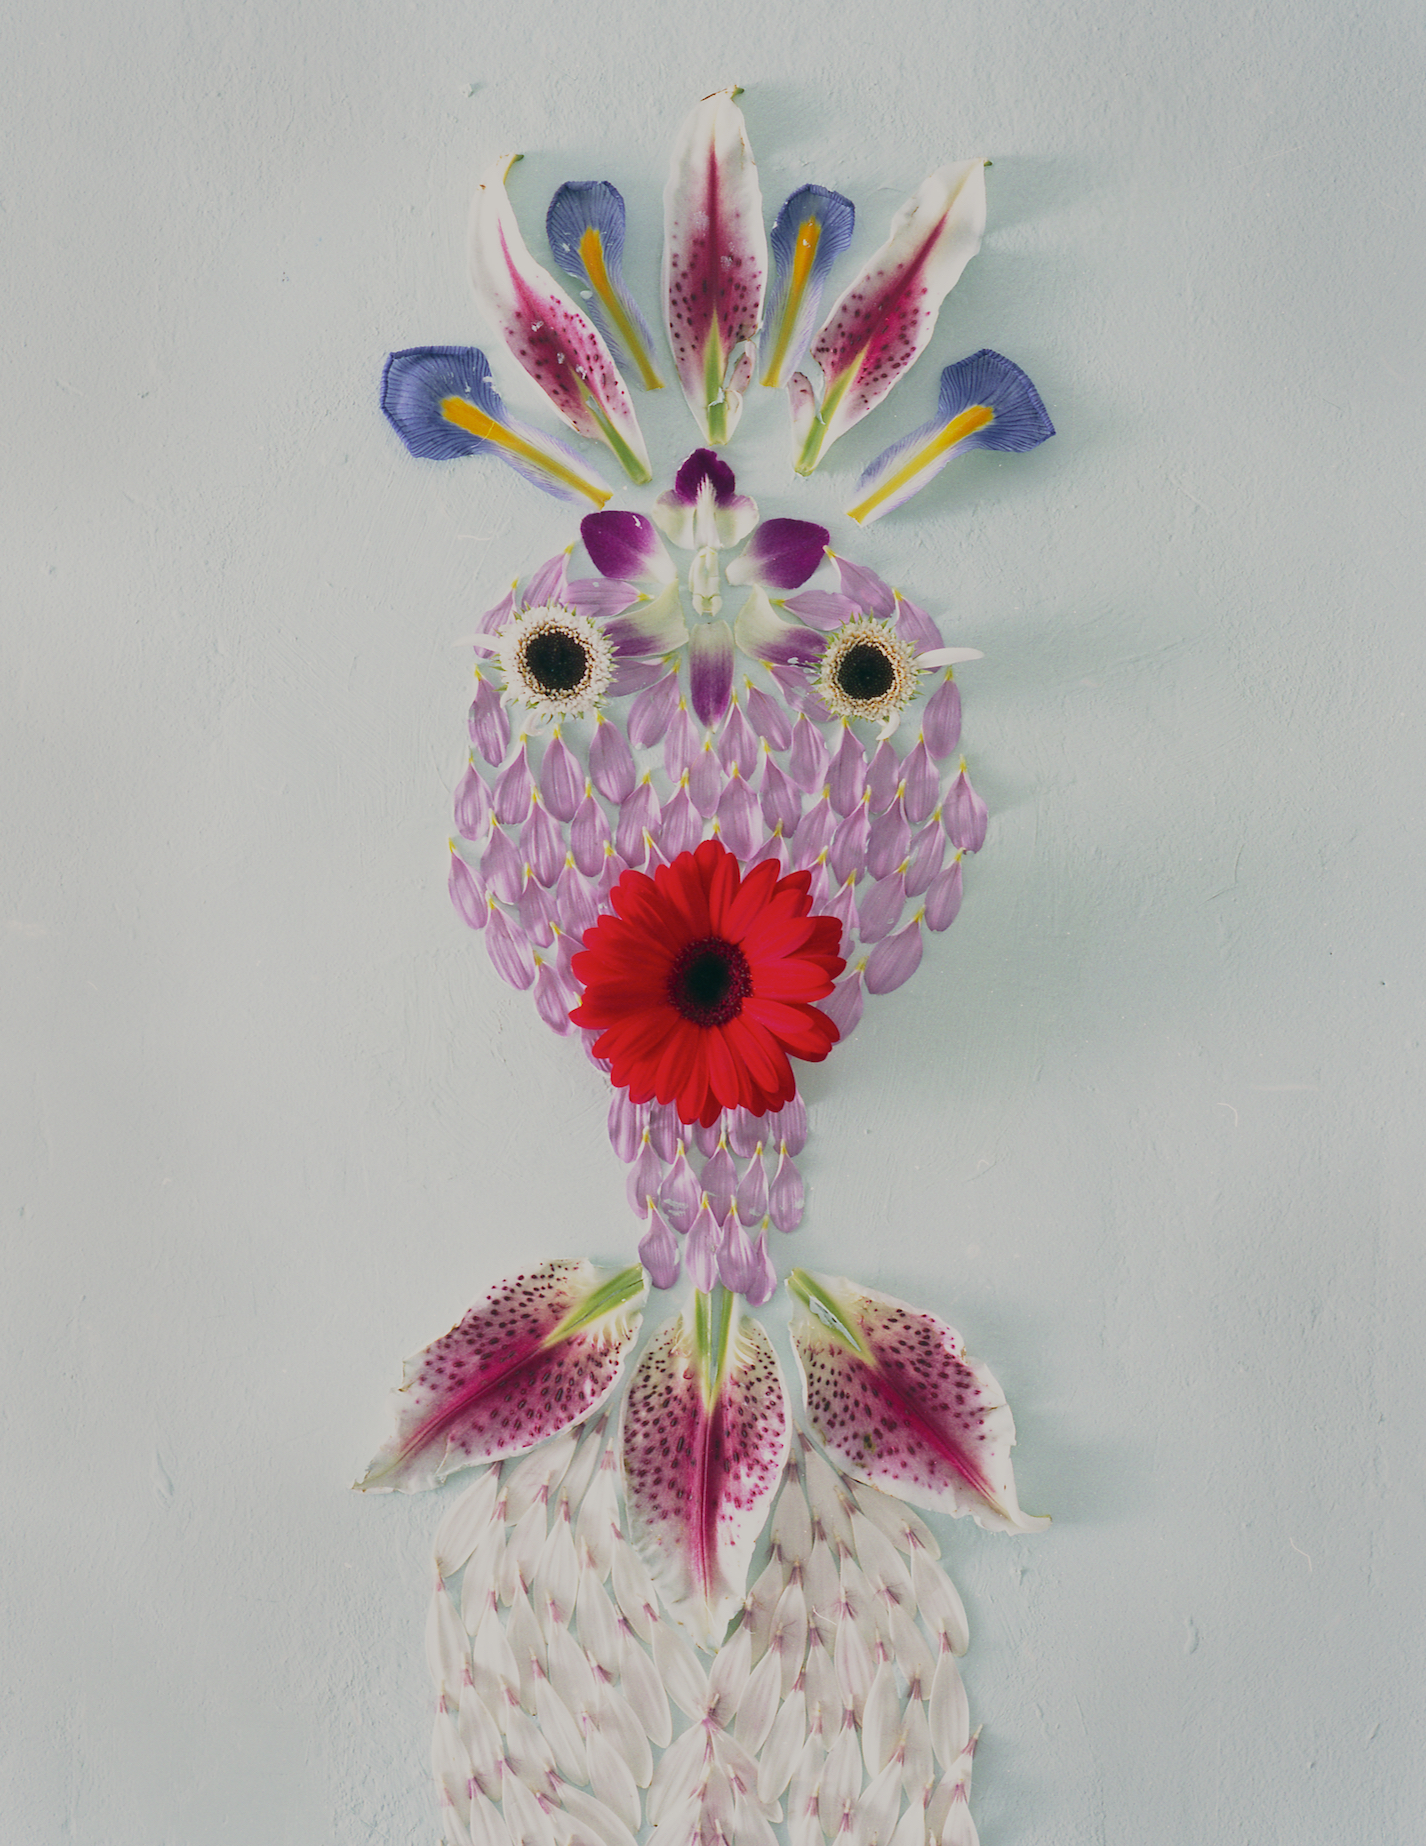 Where and when was your first public show? - My first time exhibiting work publicly was in 2000, with Ralph Pucci. We showed photographs of drawings I had made out of flower petals, stems and leaves. These drawings imagined new species of flowers, and fantastical petal creatures were assembled into their own little stories.